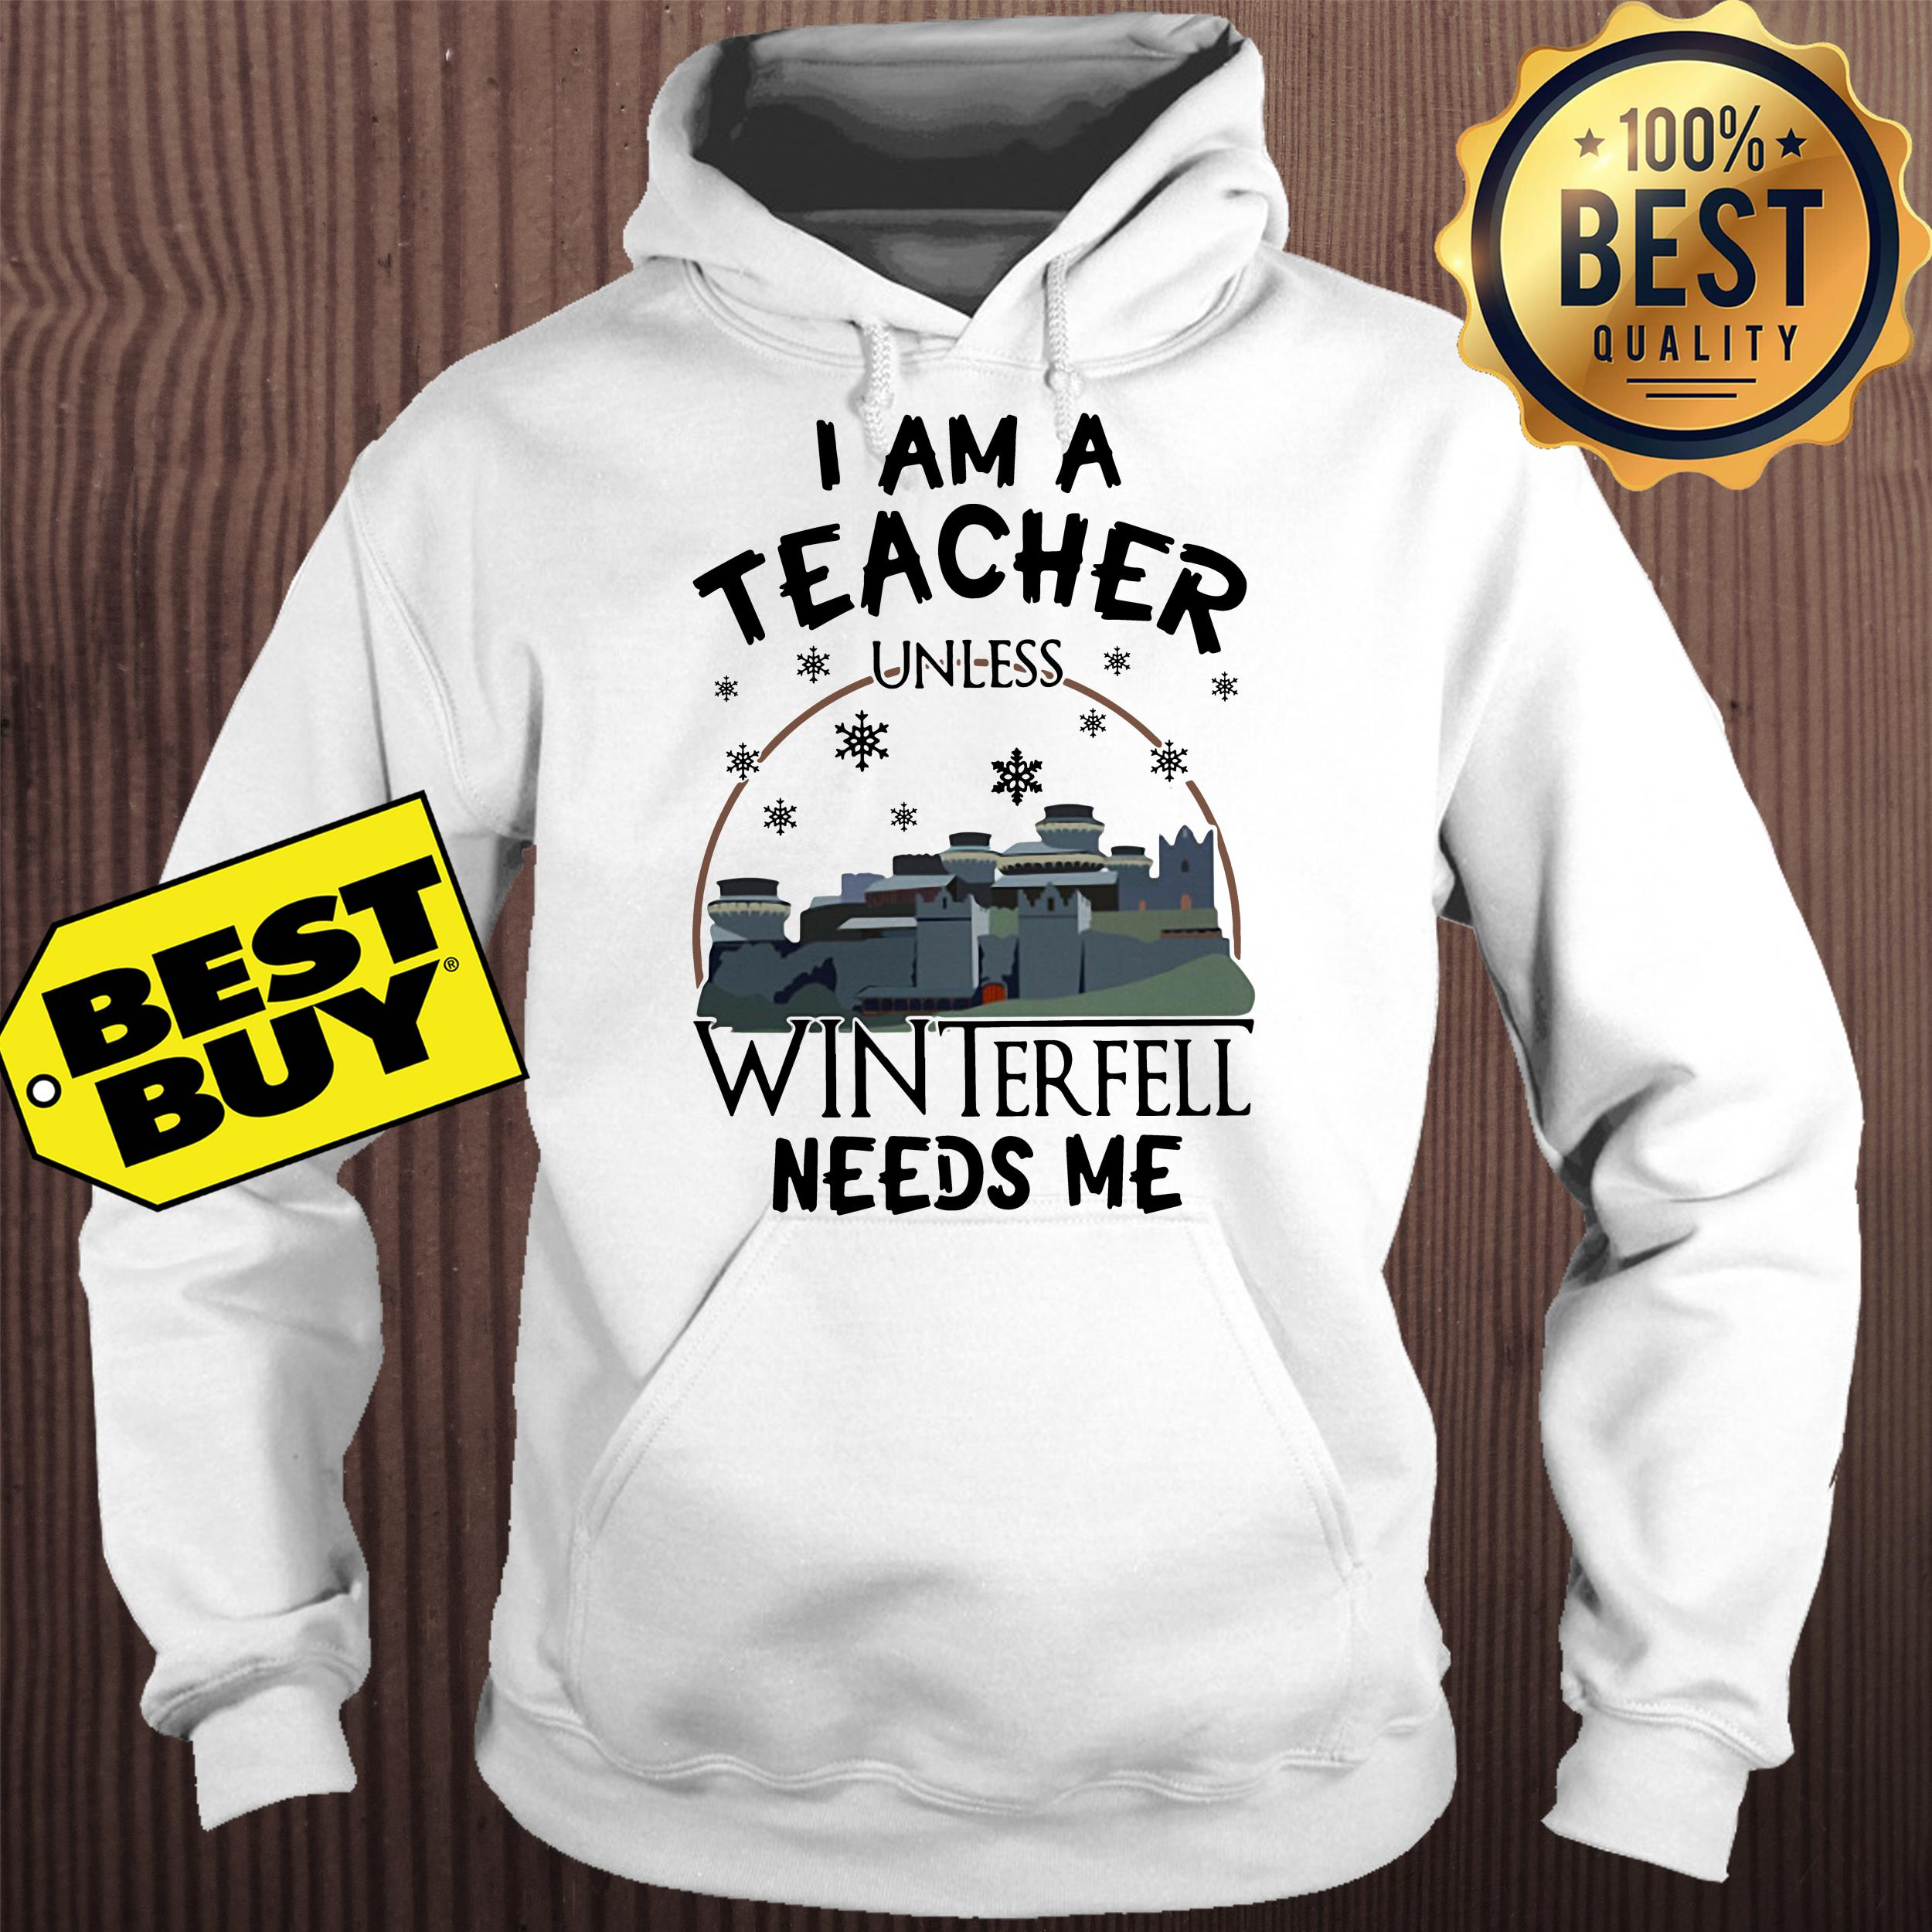 I am a teacher unless winterfell needs me hoodie